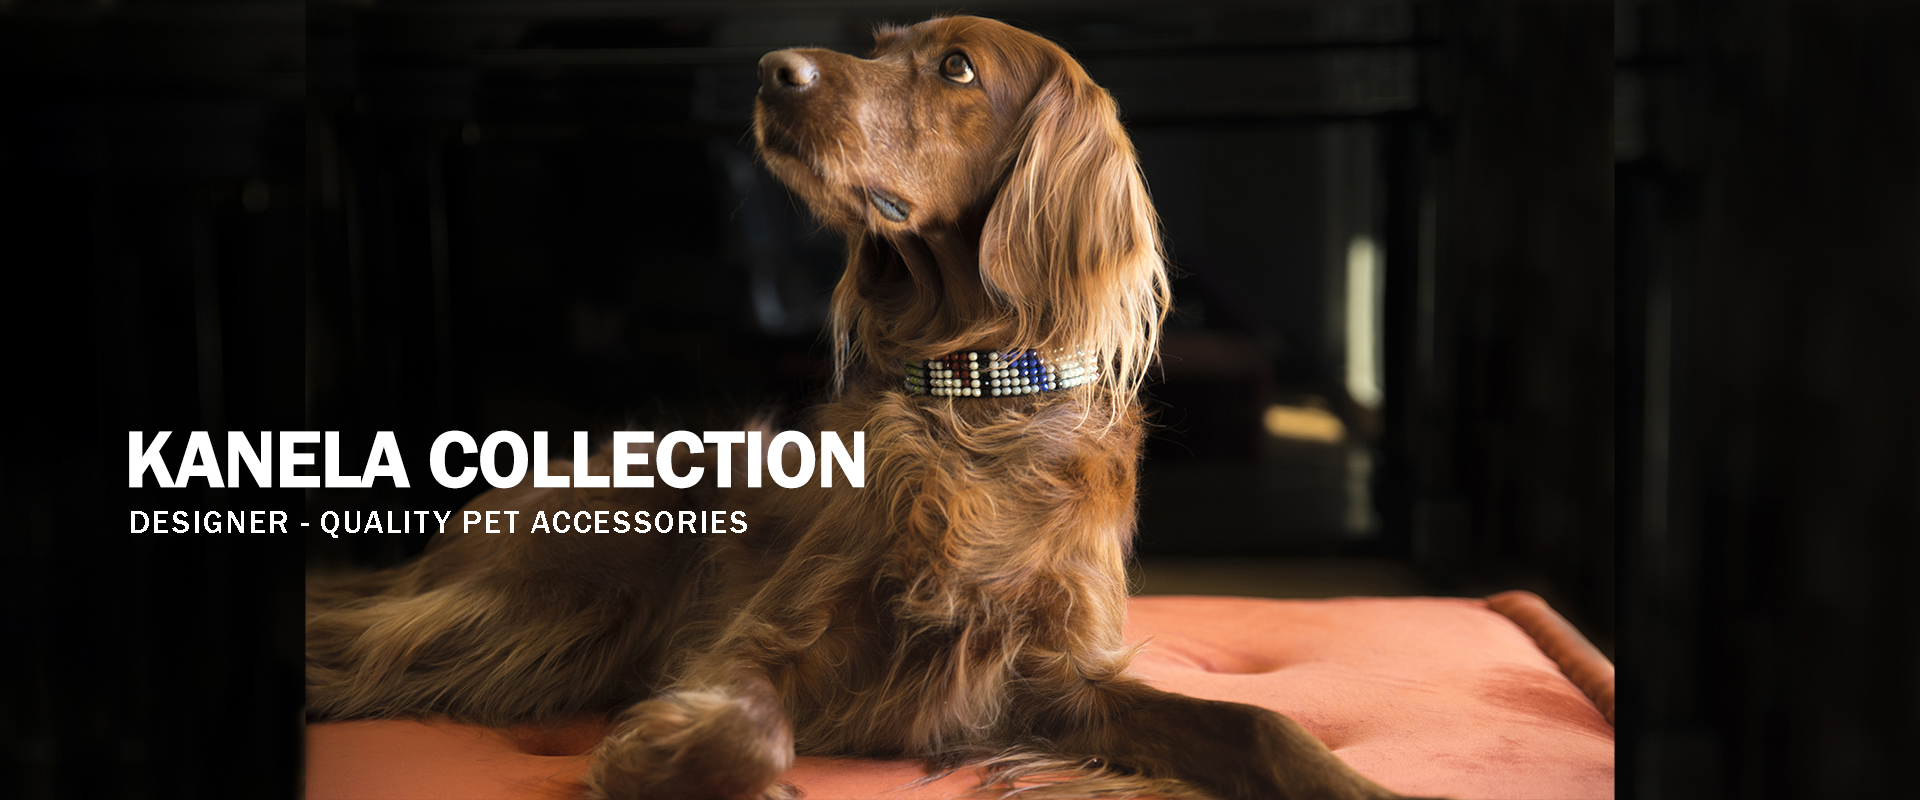 Kanela Collection | Designer-quality pet accessories by zikos